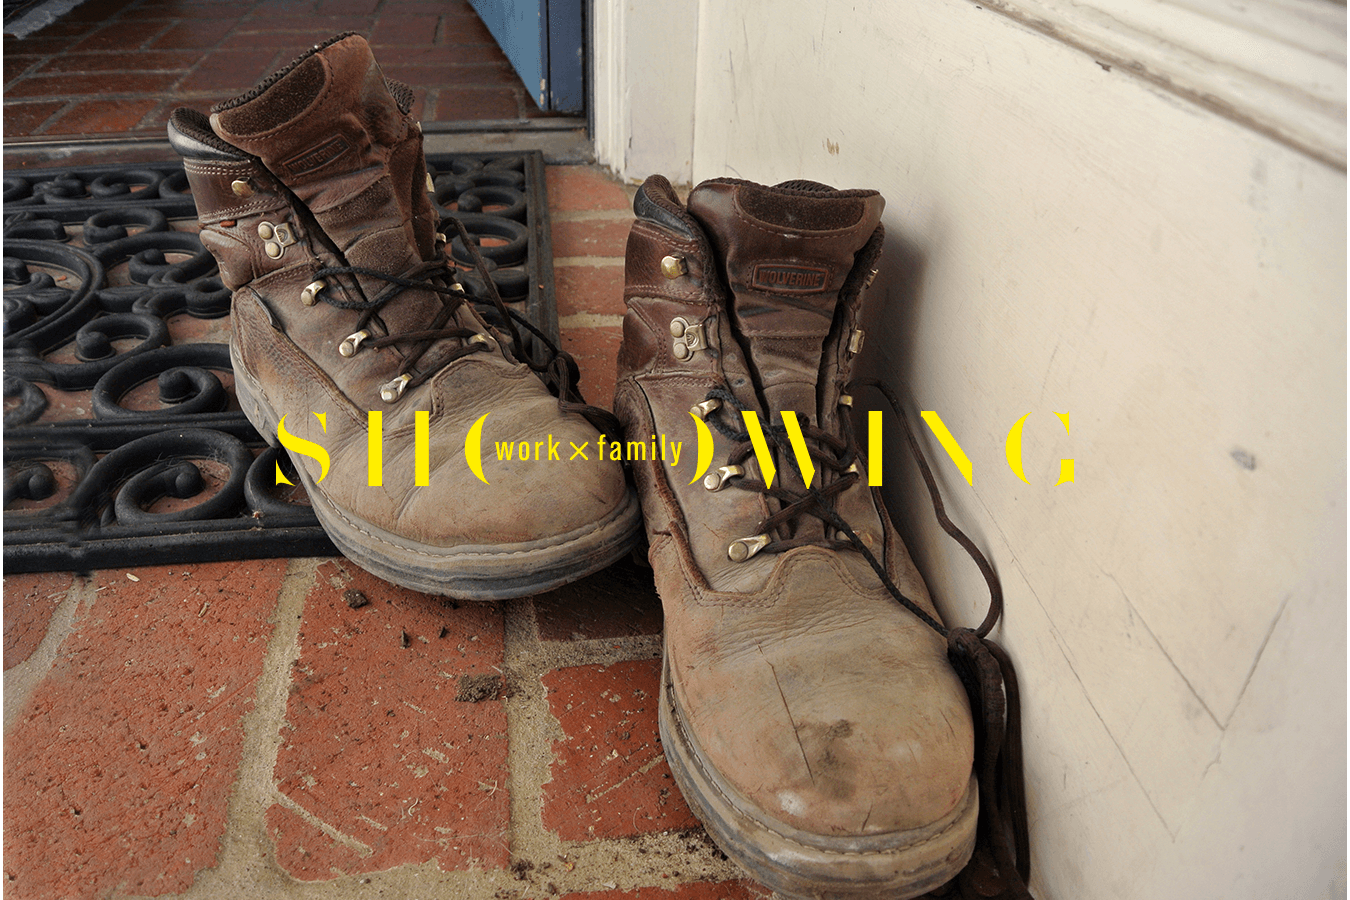 """My father's tools, including his boots, allow us to live as comfortably as we do. He's so exhausted at the end of his work day, he just kicks them off and leaves them on the porch.""  © 2013 Sophia Bilbao,  wrkxfmly  Assignment, Berkeley High School, Berkeley, CA"